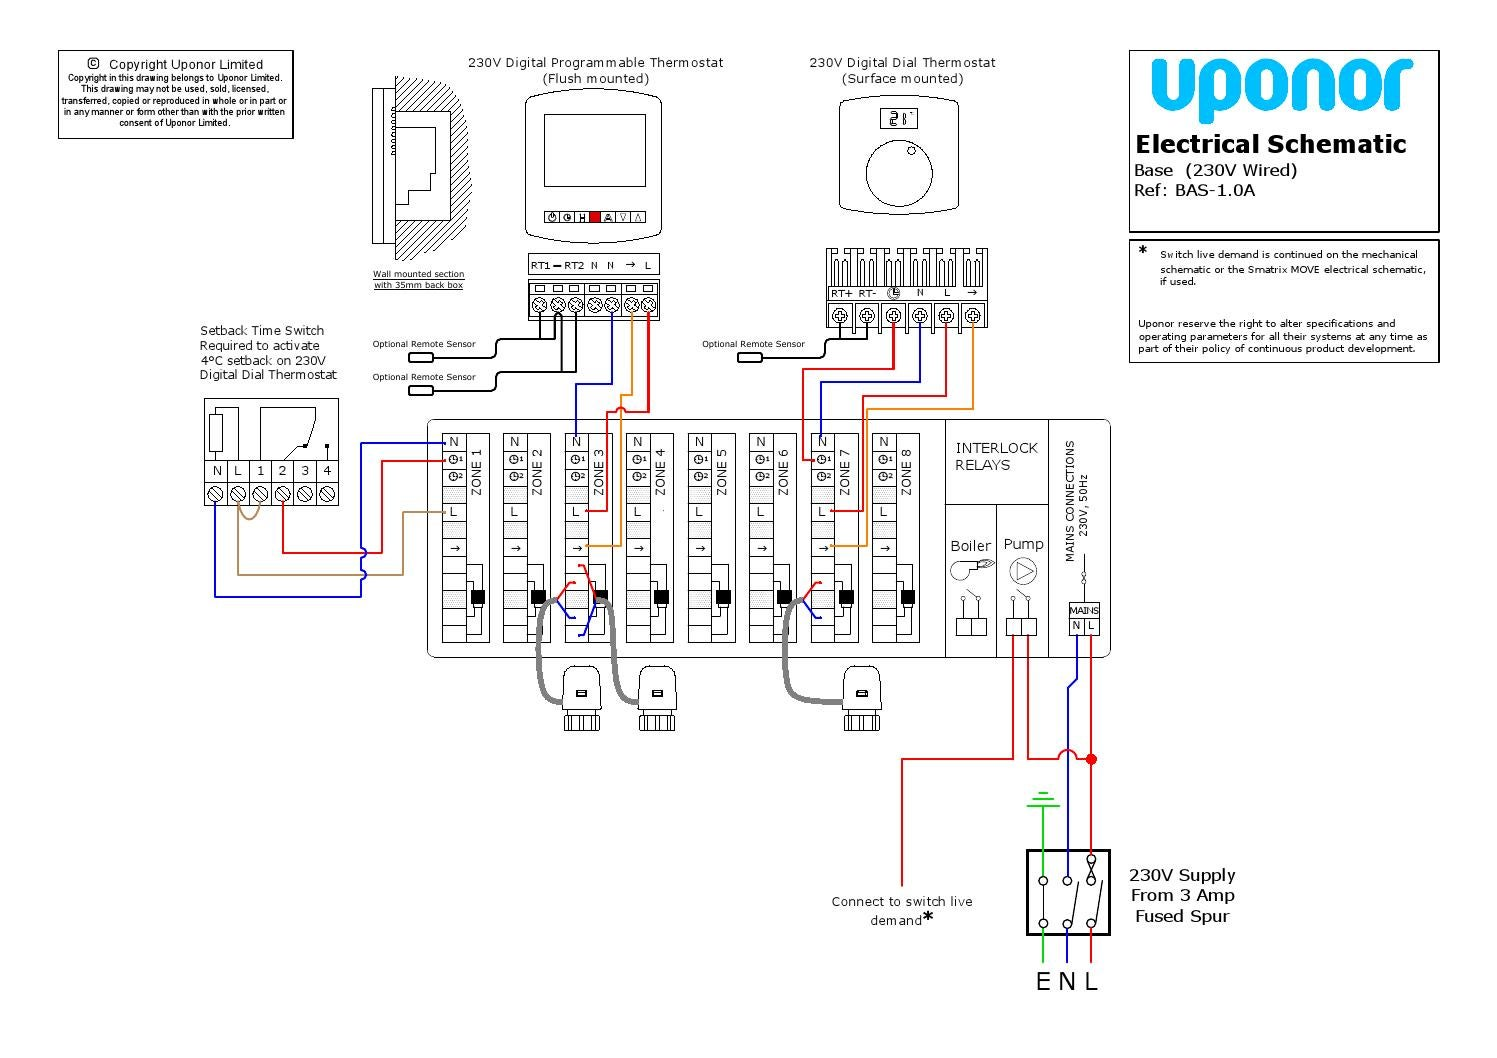 2002 yamaha 660 grizzly wiring diagram in pdf 230v control system by uponor uk - issuu